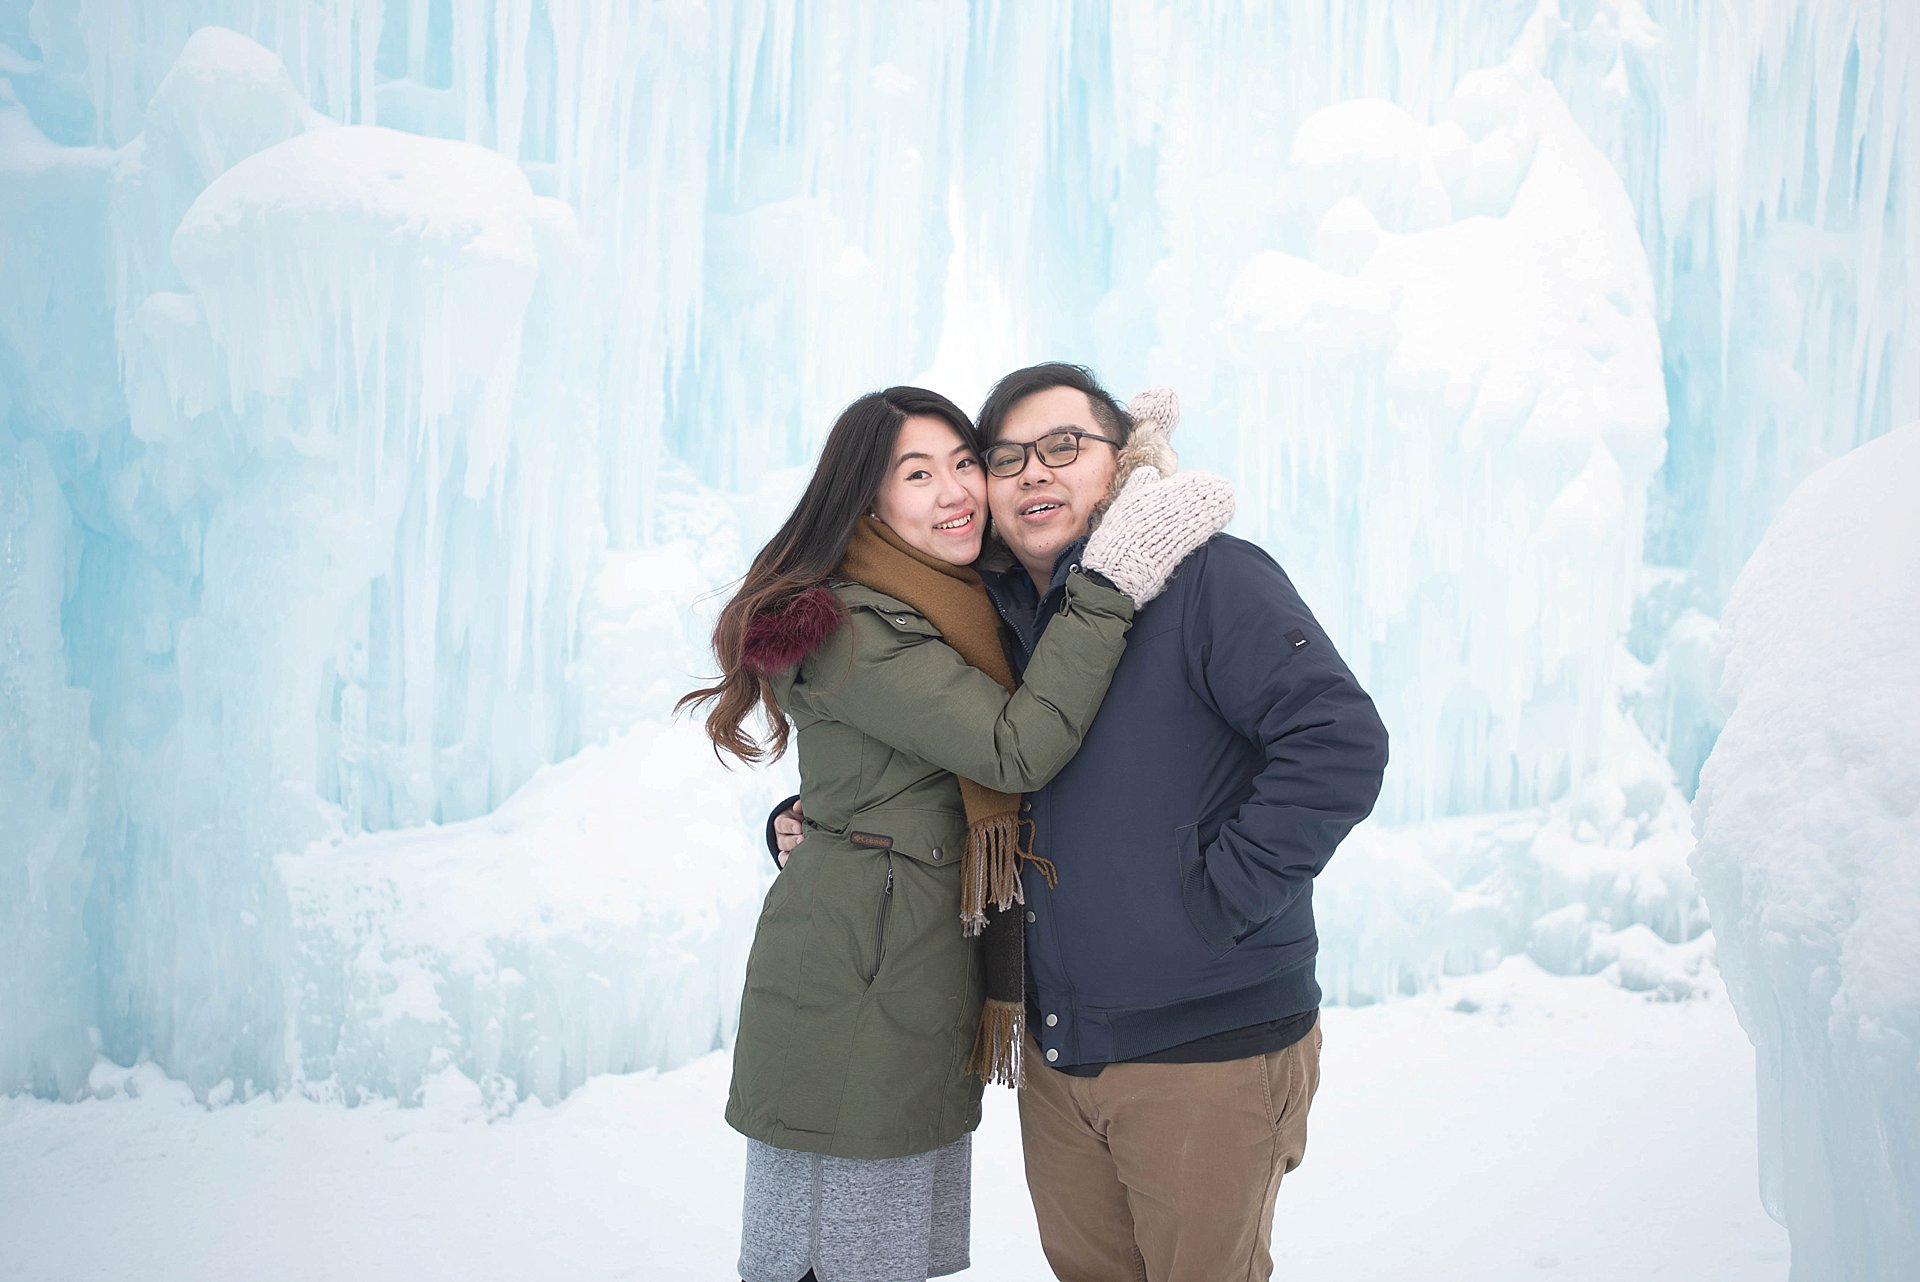 VJ-Ice-castles-engagement-photography_0007